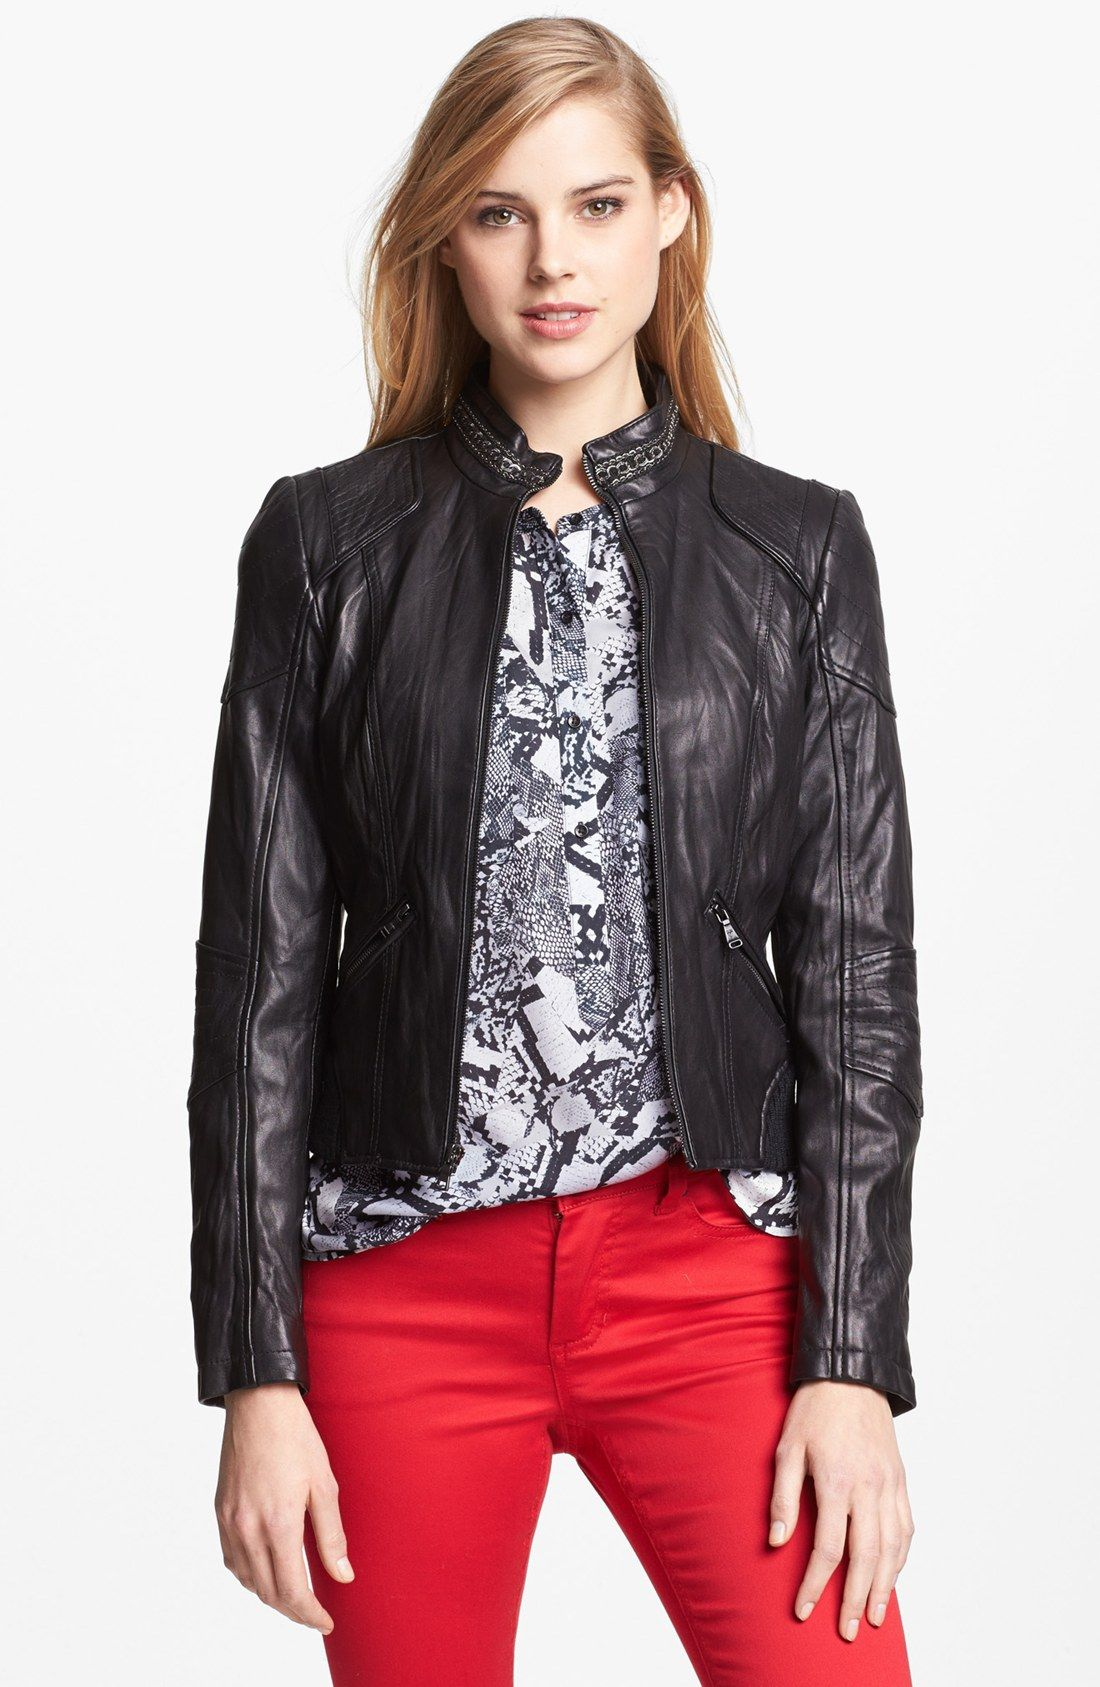 35 Trendy Womens Leather Jackets | Leather jackets, Leather and Chains